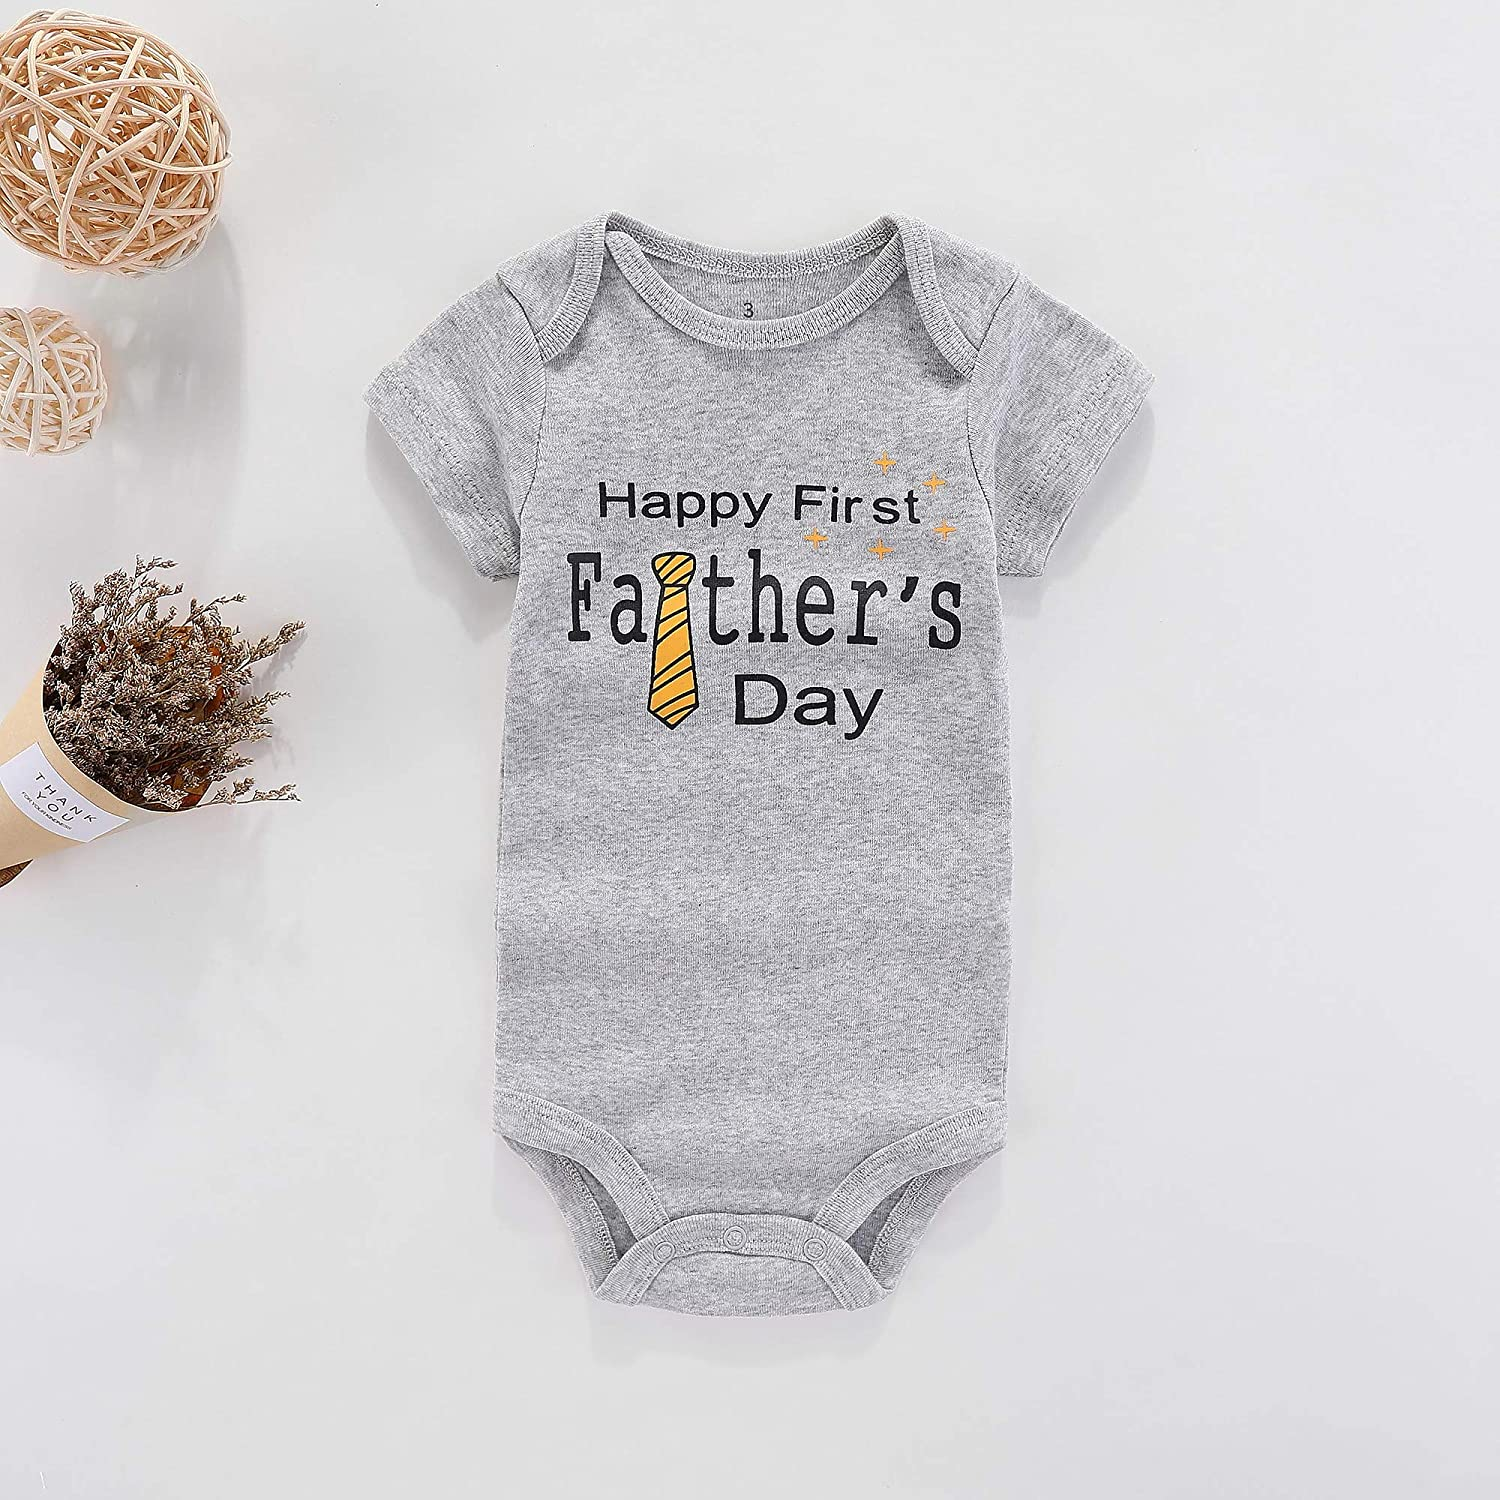 Amazon.com: WINZIK Happy 1st Fathers Day - Body para bebé ...